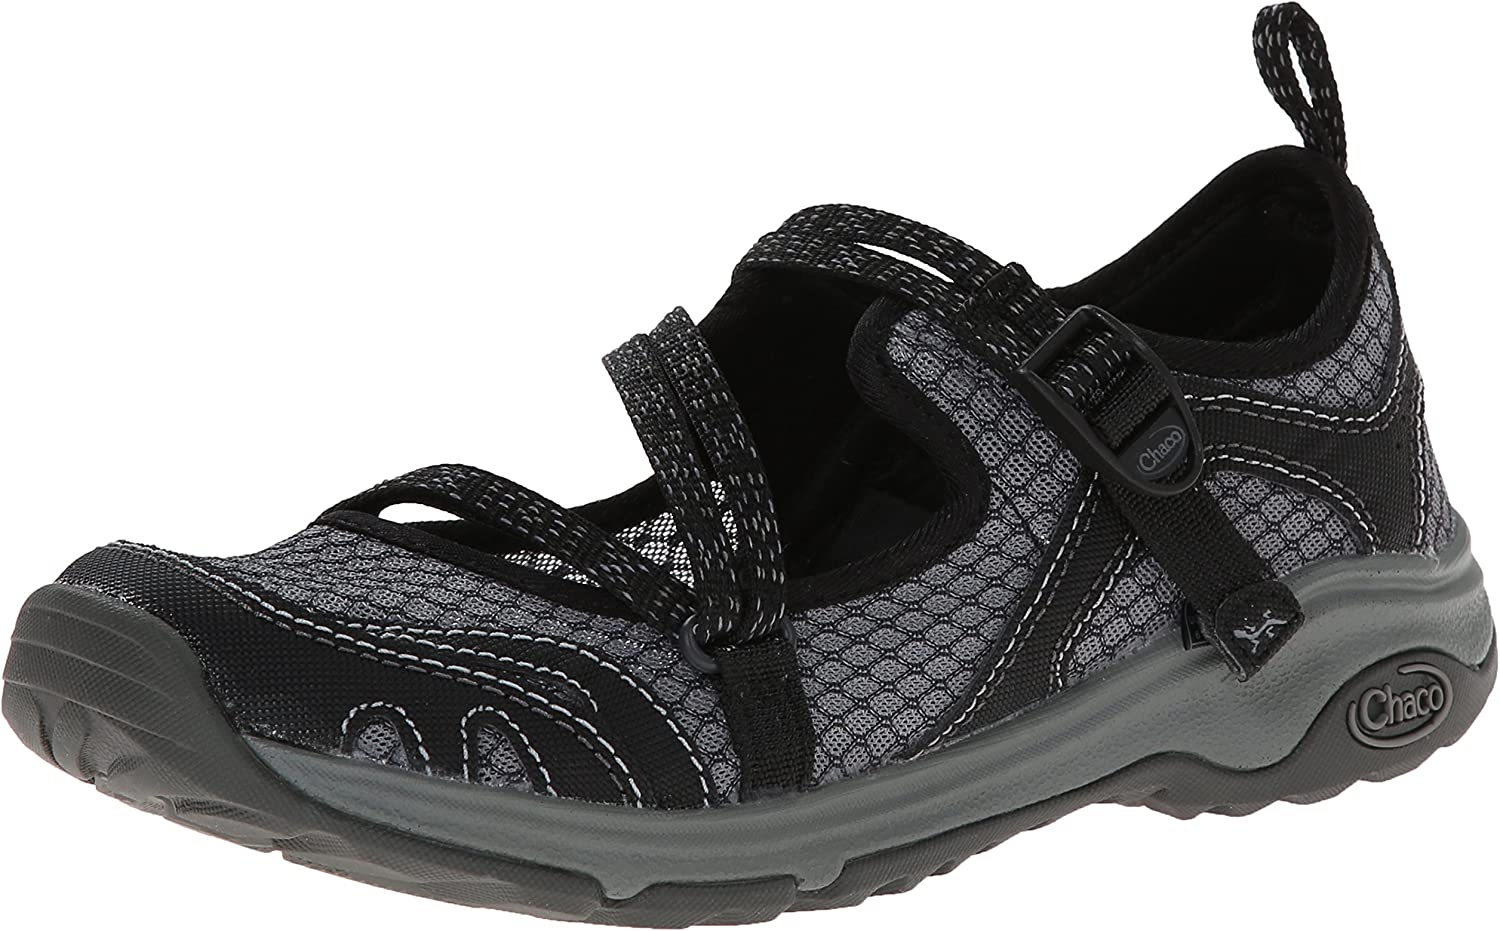 Chaco Women s Outcross Evo MJ Hiking Shoe